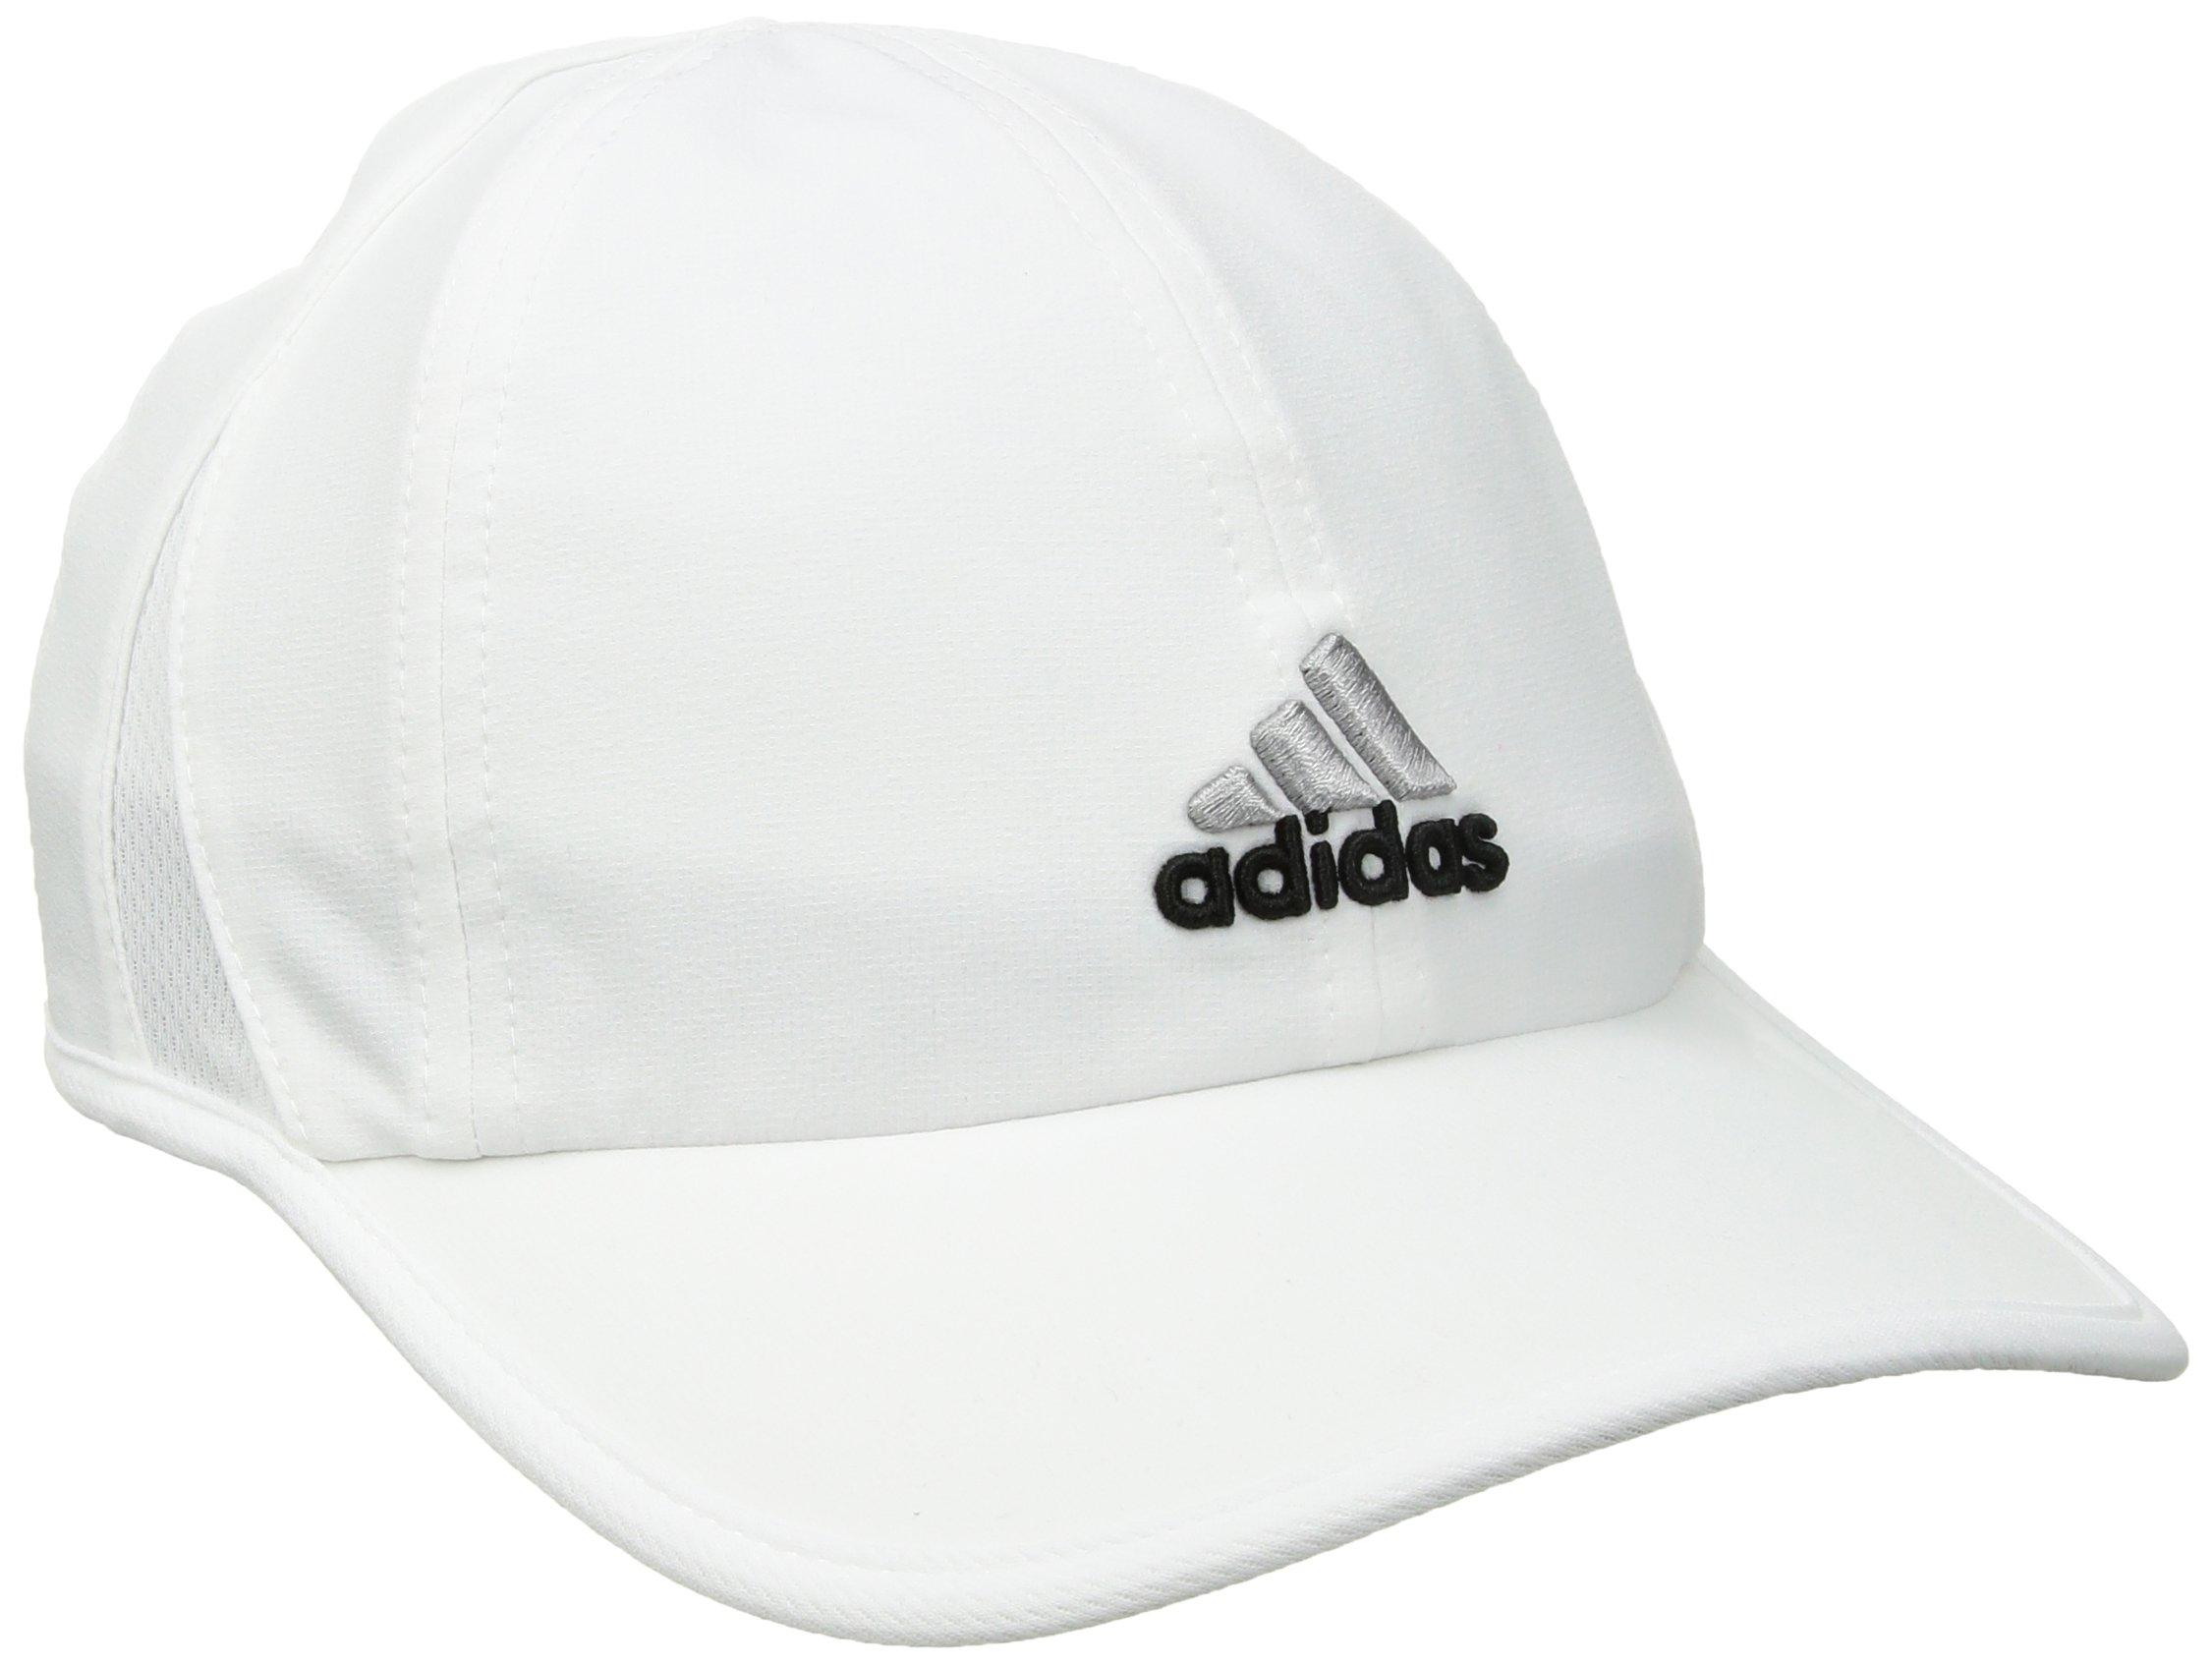 89283e8b78b33 adidas Women s Adizero Relaxed Adjustable Performance Cap